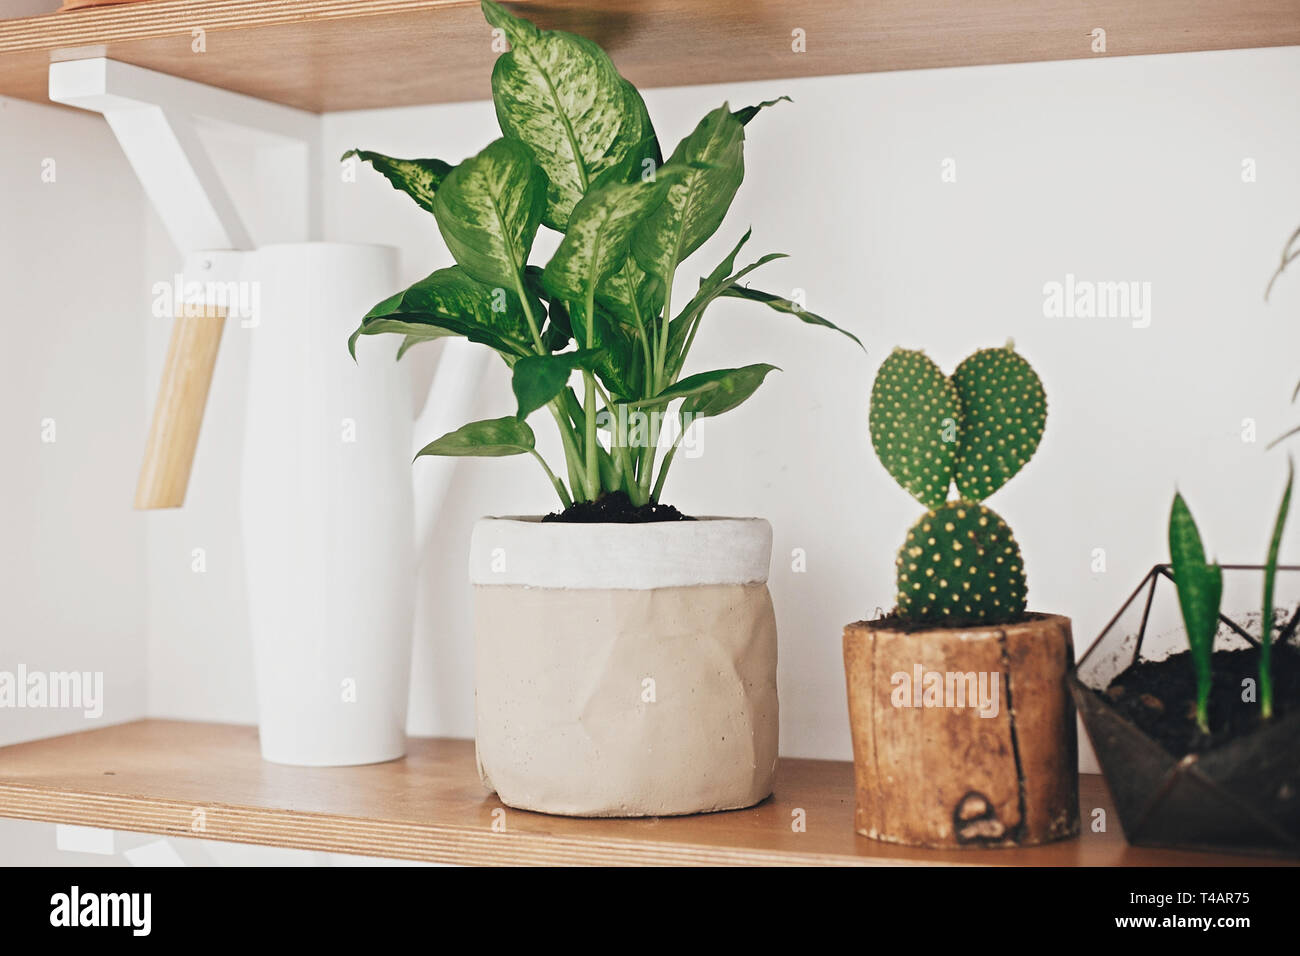 Stylish Wooden Shelves With Modern Green Plants And White